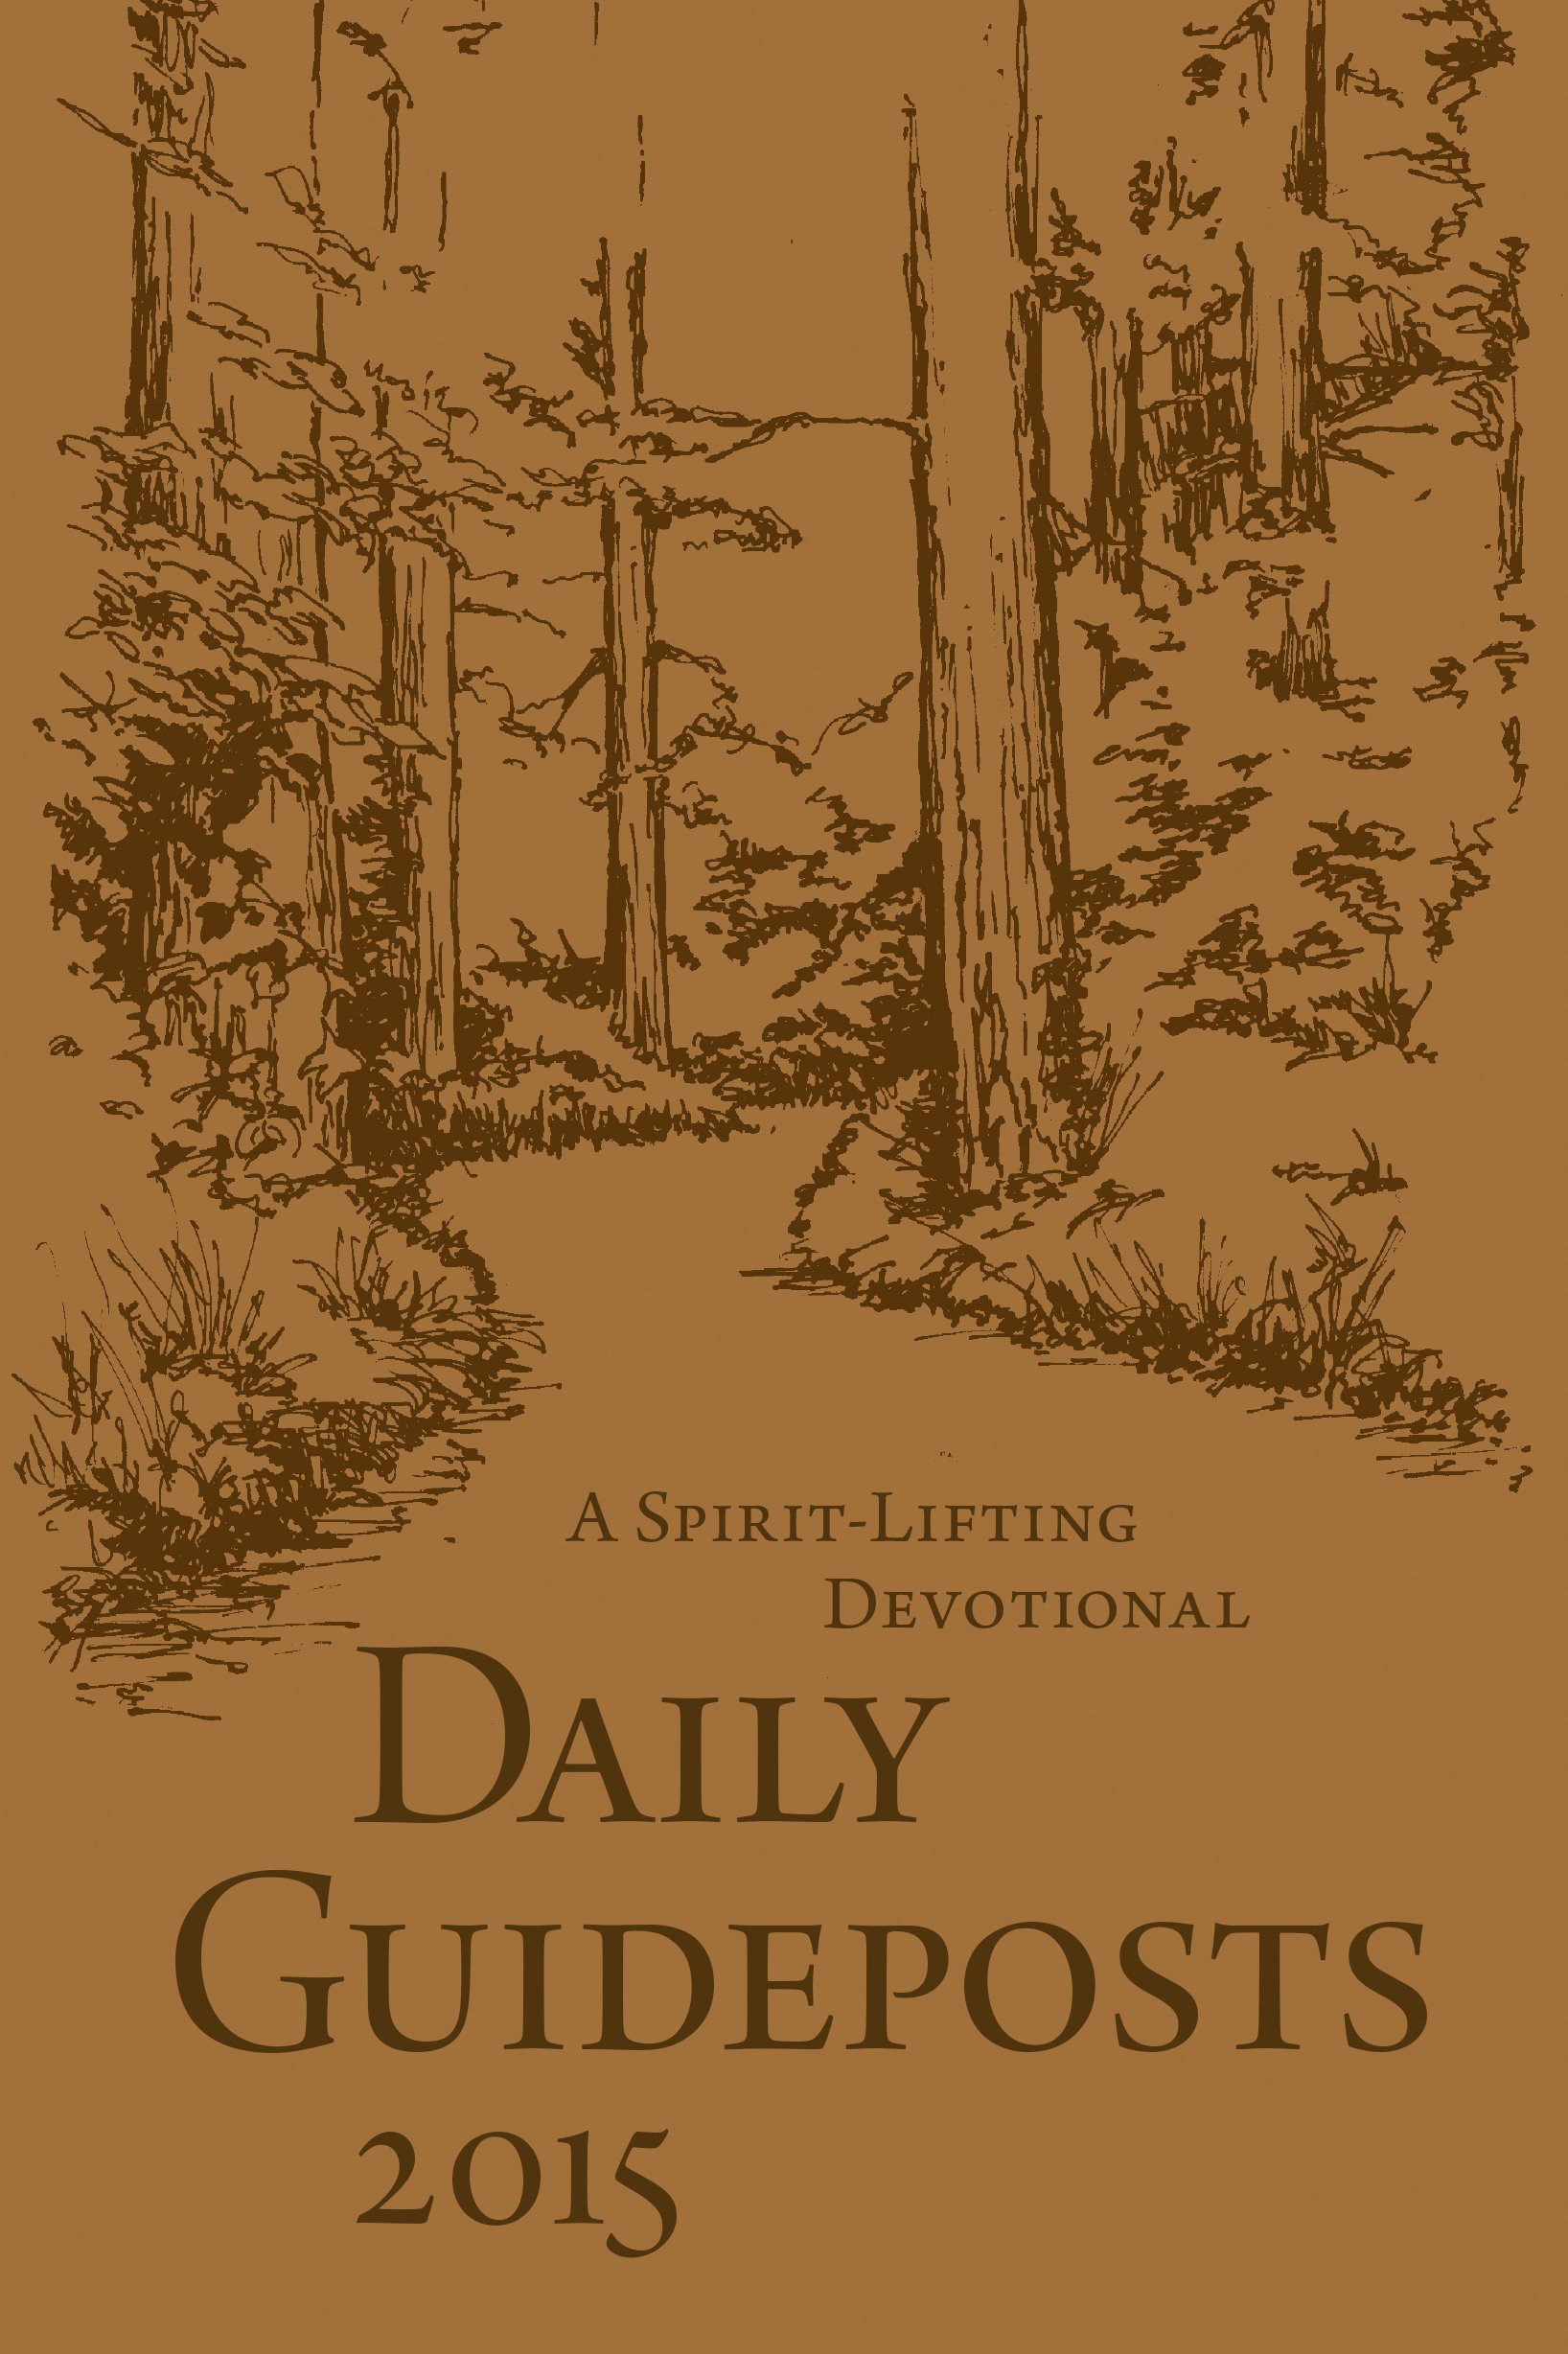 Download Daily Guideposts 2015: A Spirit-Lifting Devotional (Deluxe Edition) pdf